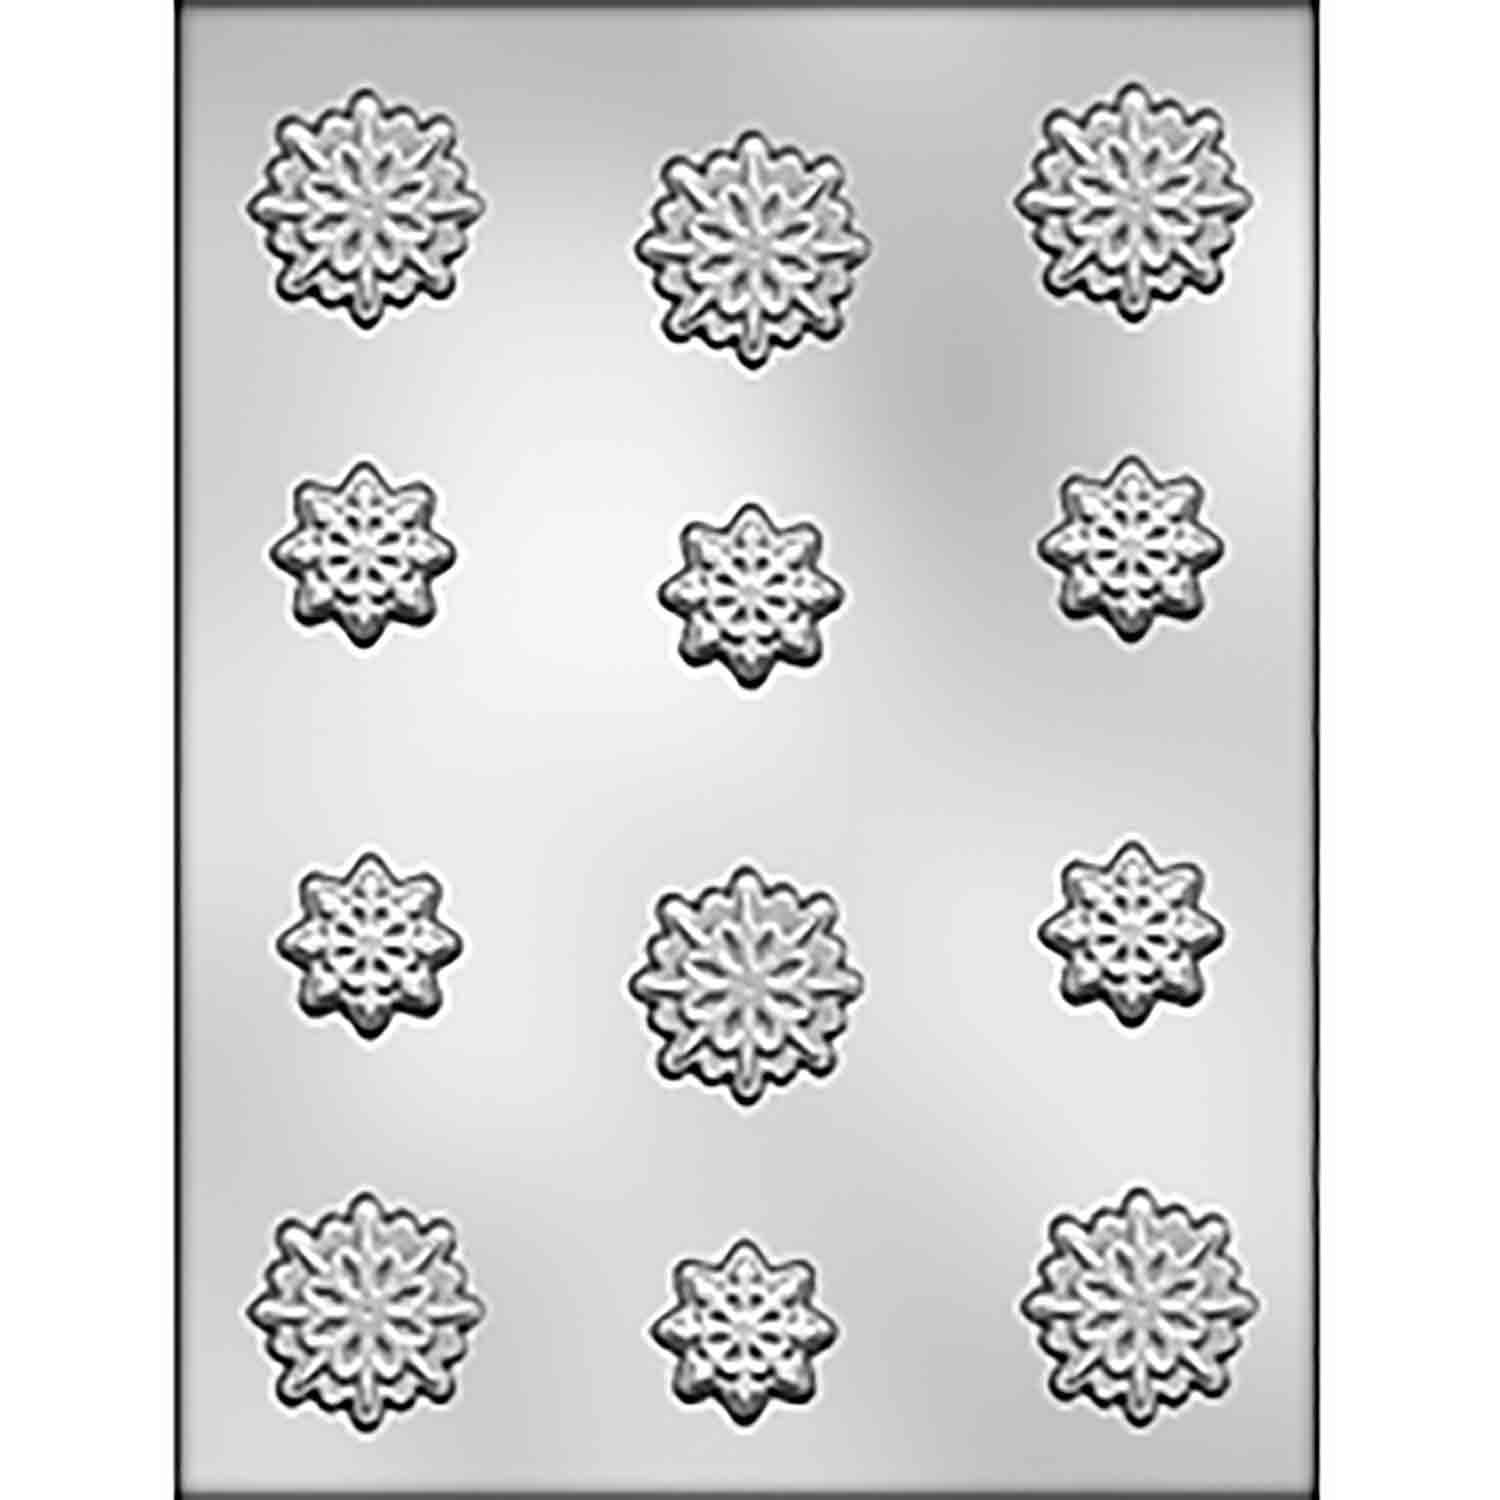 8 Point Snowflakes Assortment Chocolate Candy Mold